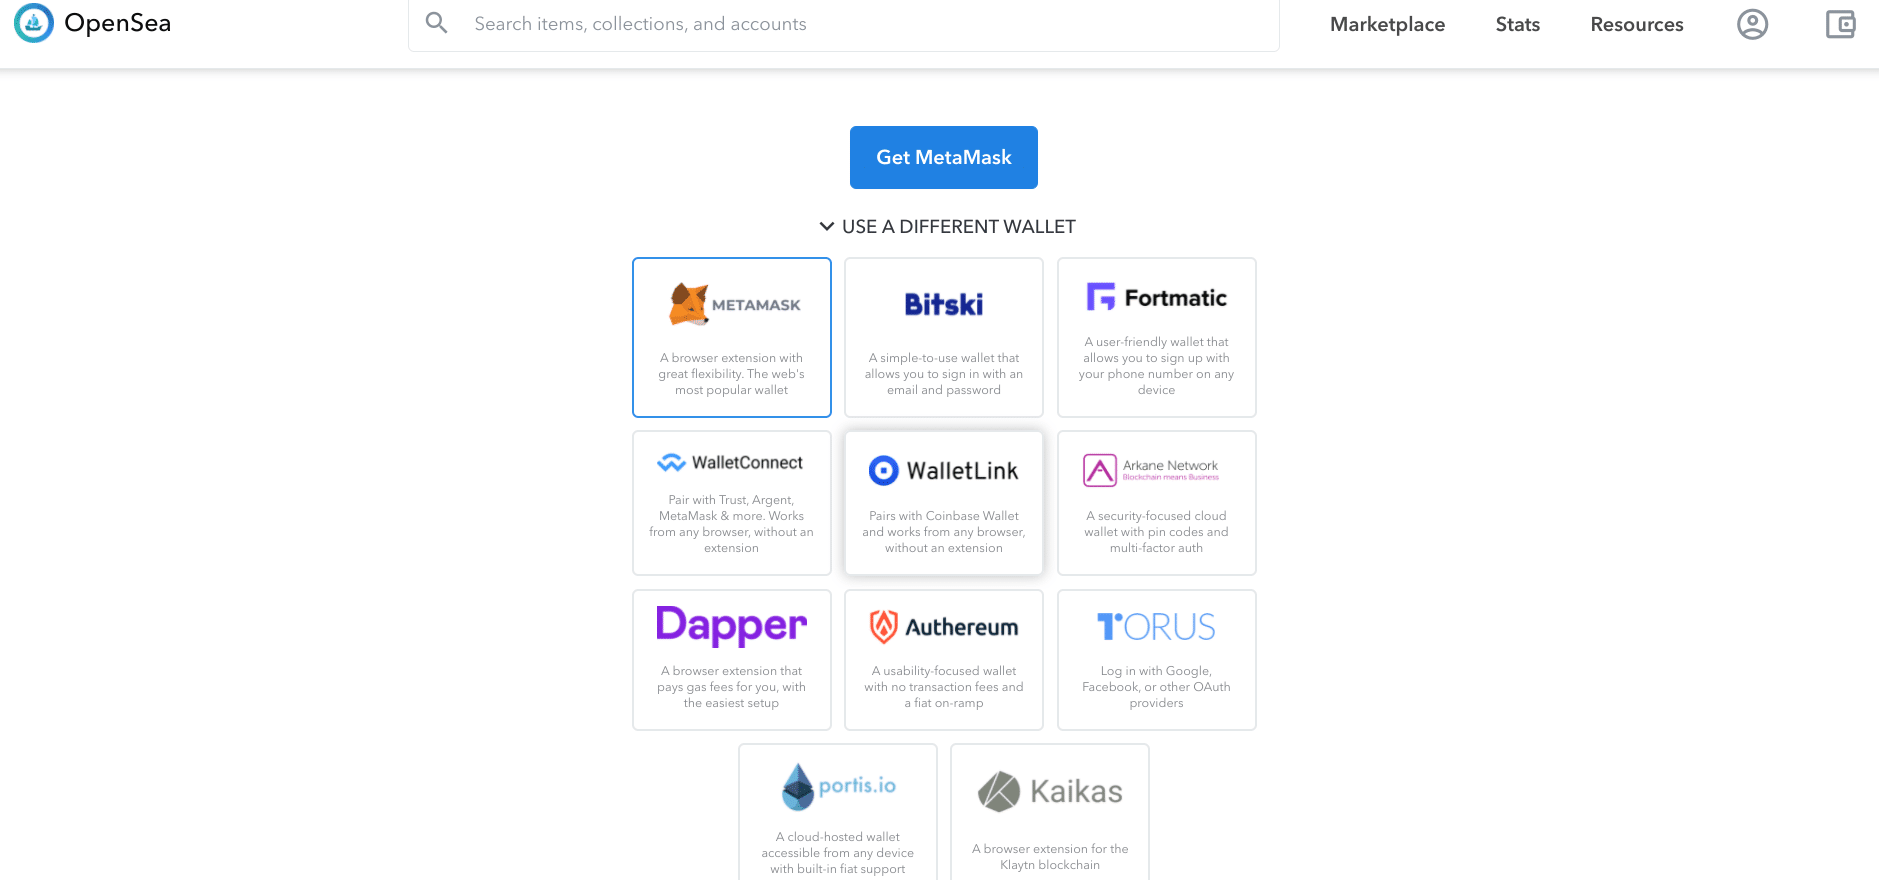 Supported wallets